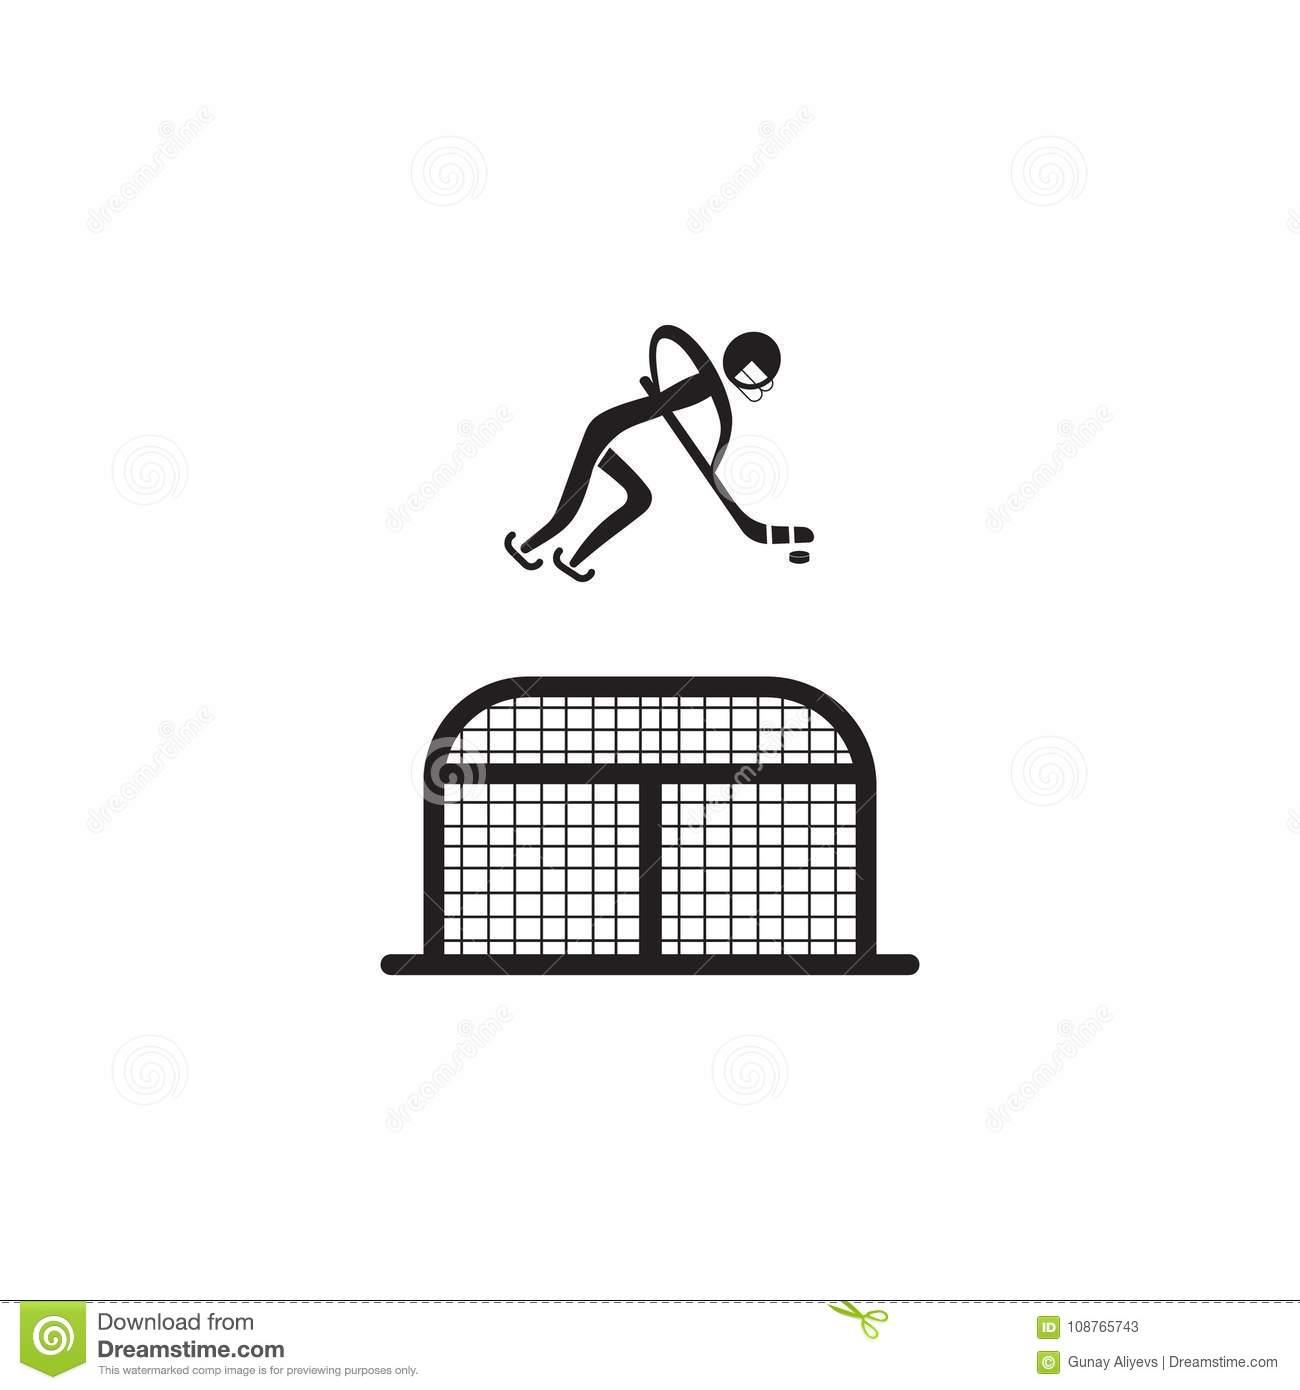 hockey player in front of the gate icon. Element of figures of sportsman icon. Premium quality graphic design icon. Signs, symbols